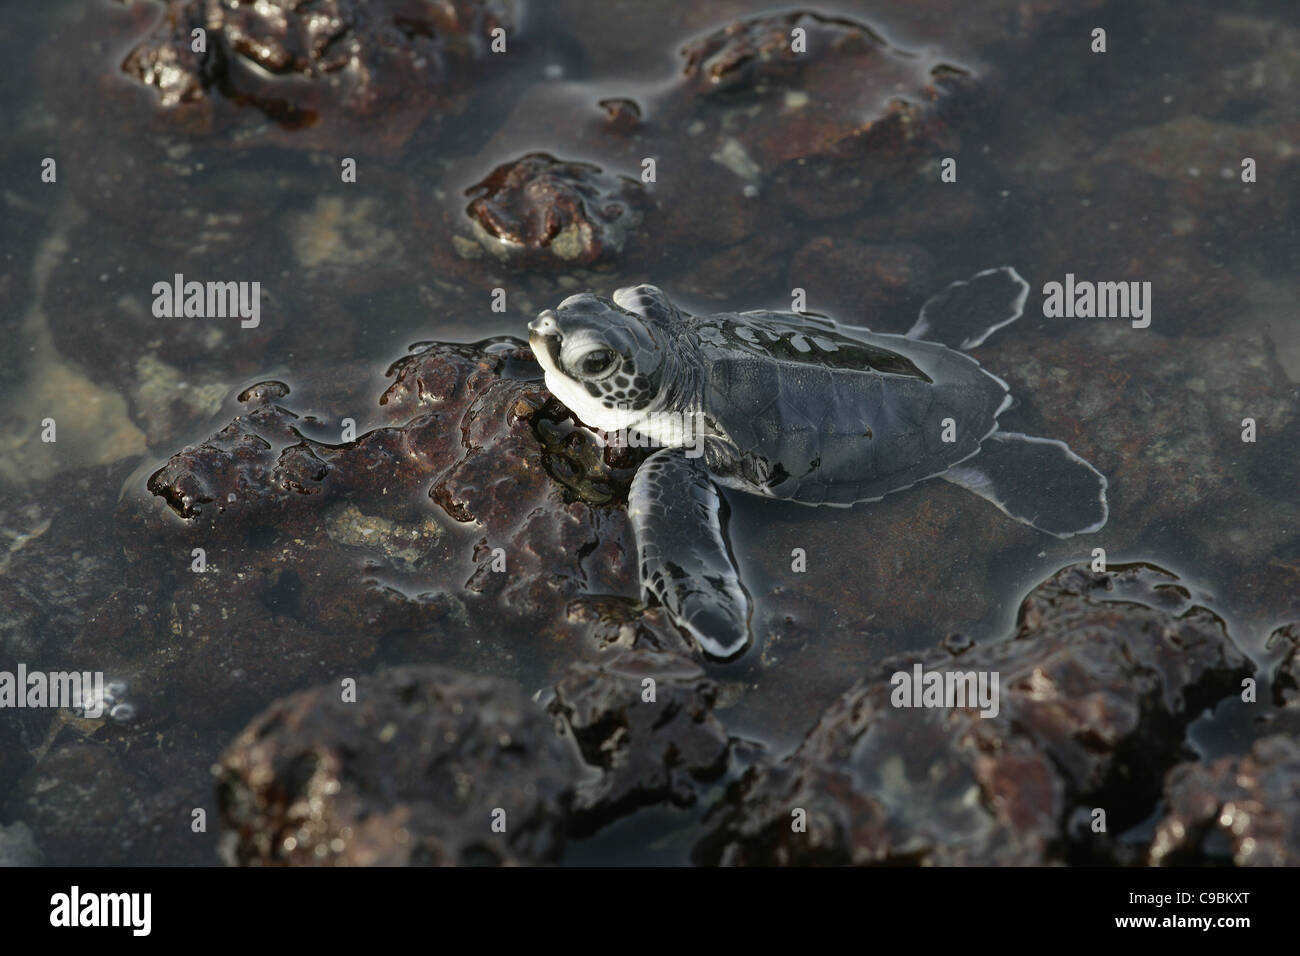 Africa, Guinea-Bissau, Baby turtle in water, close up Stock Photo